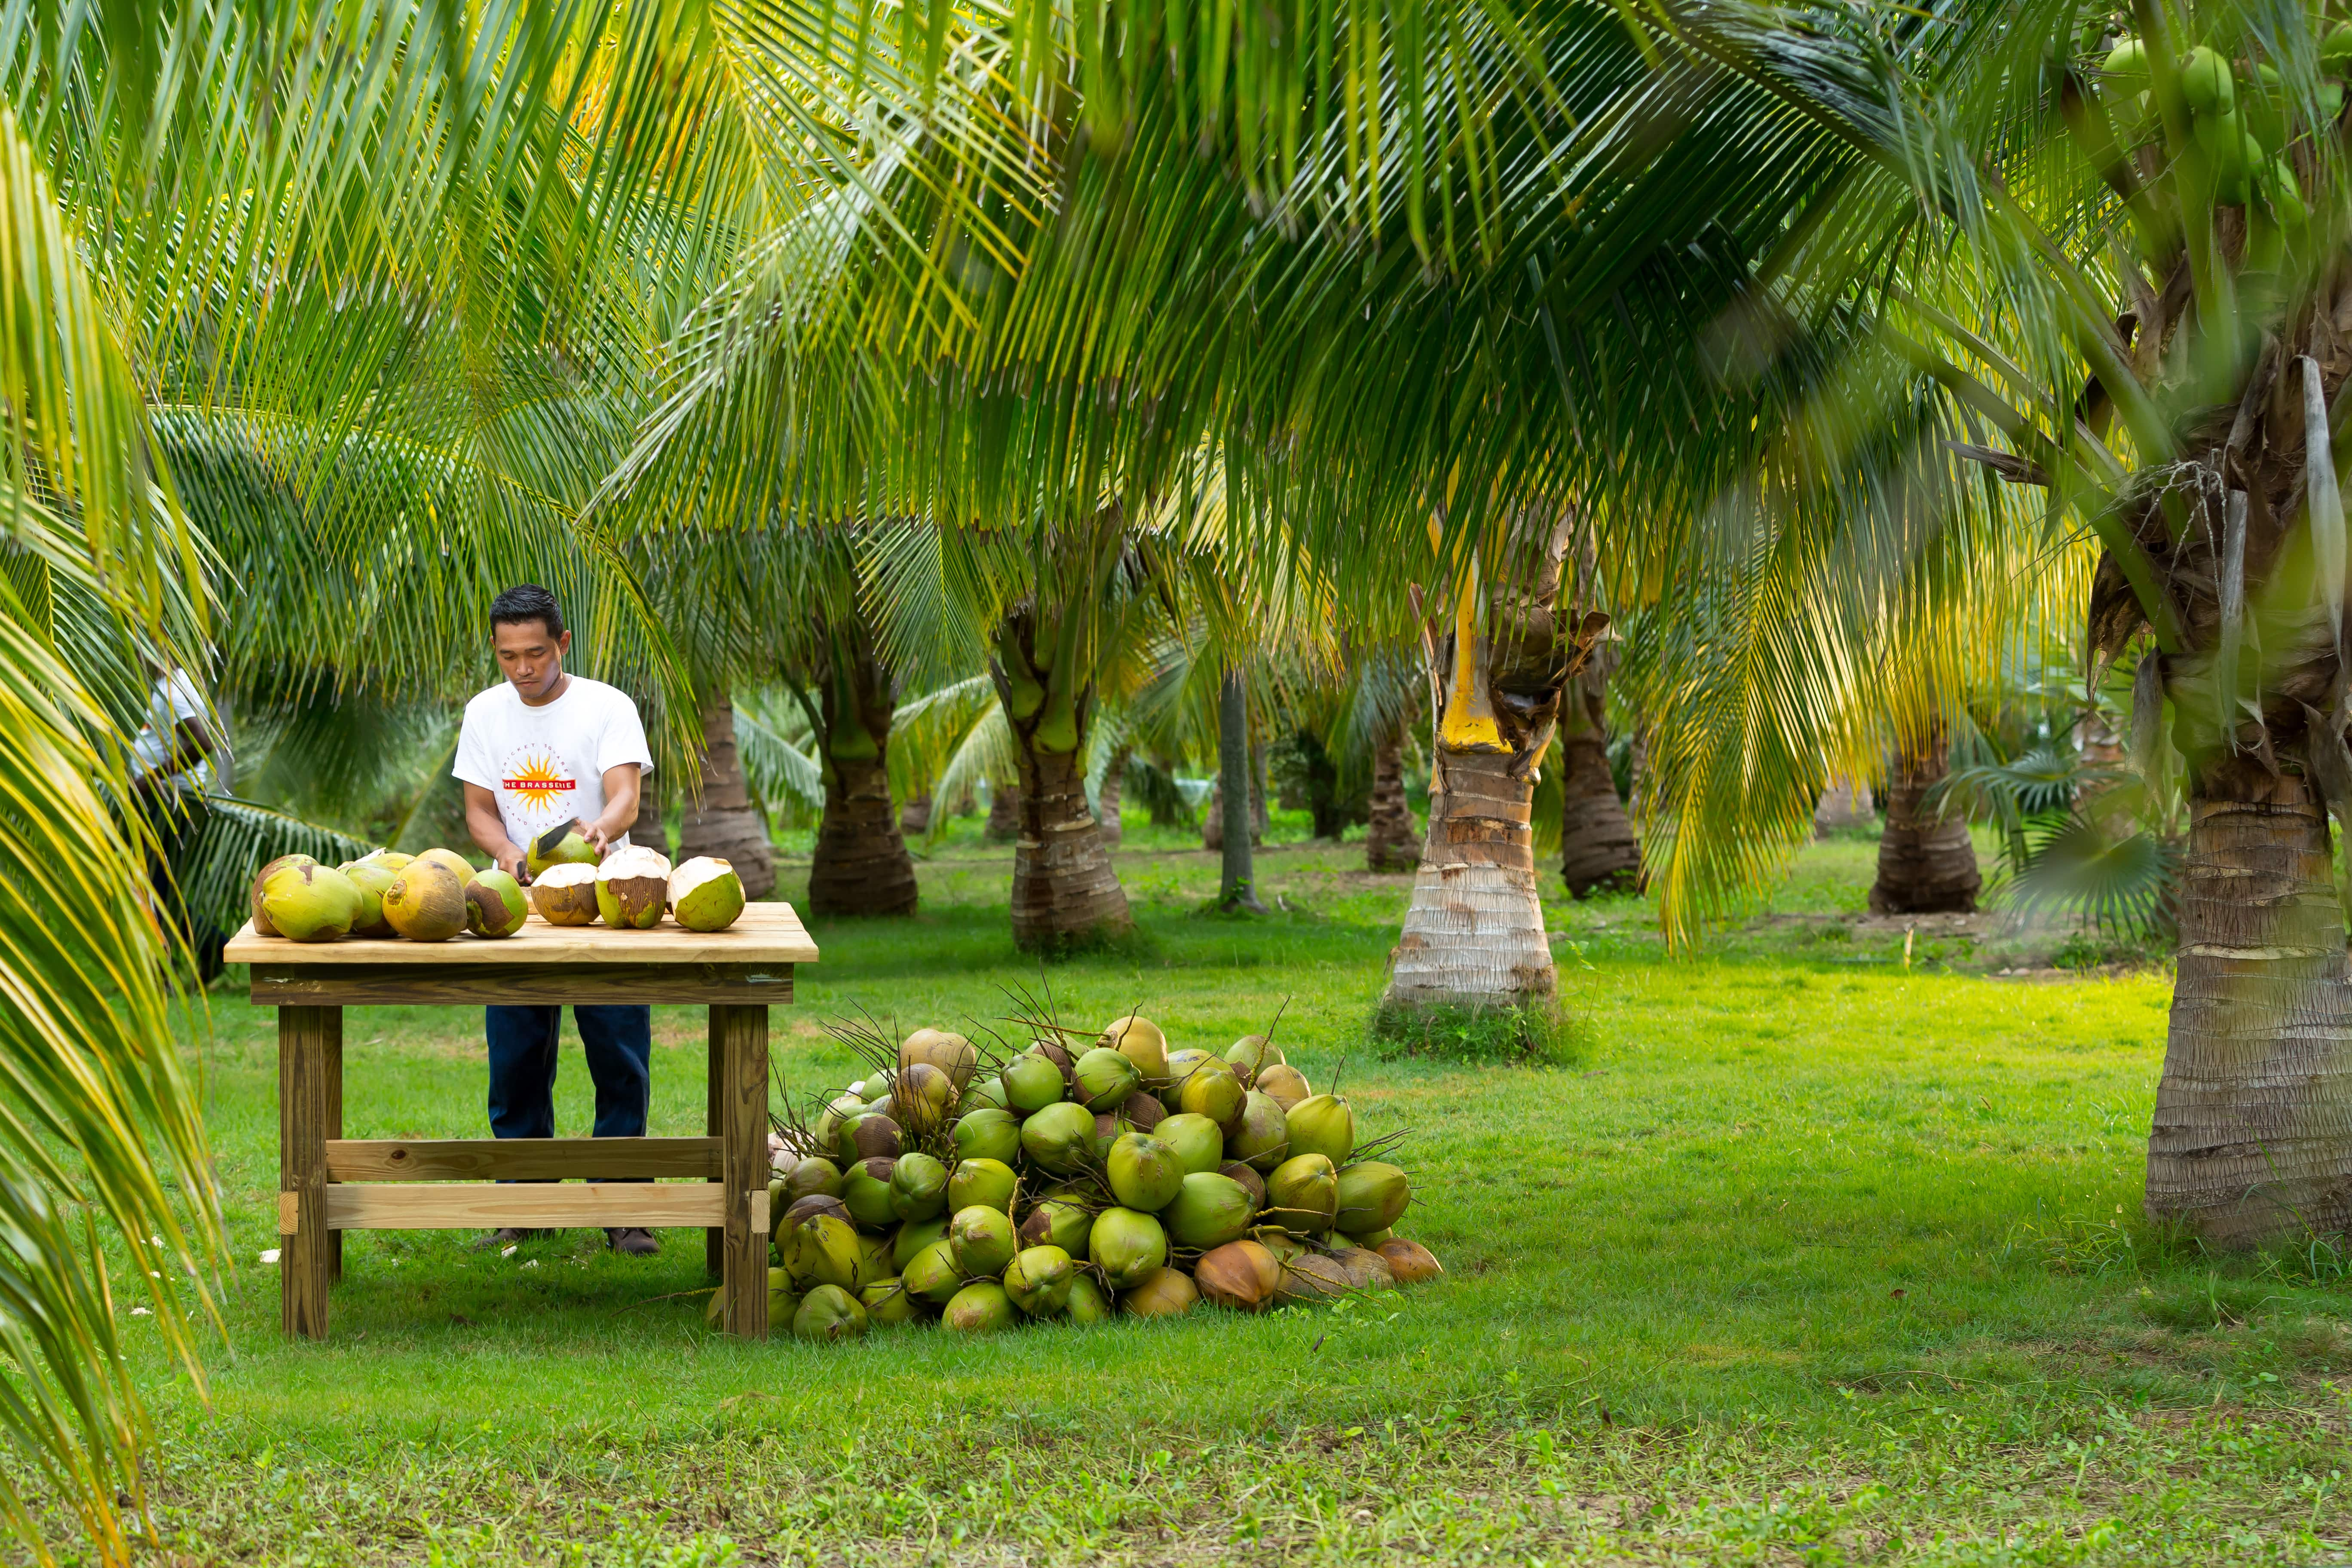 Man chopping coconuts at Brasserie Market Cayman